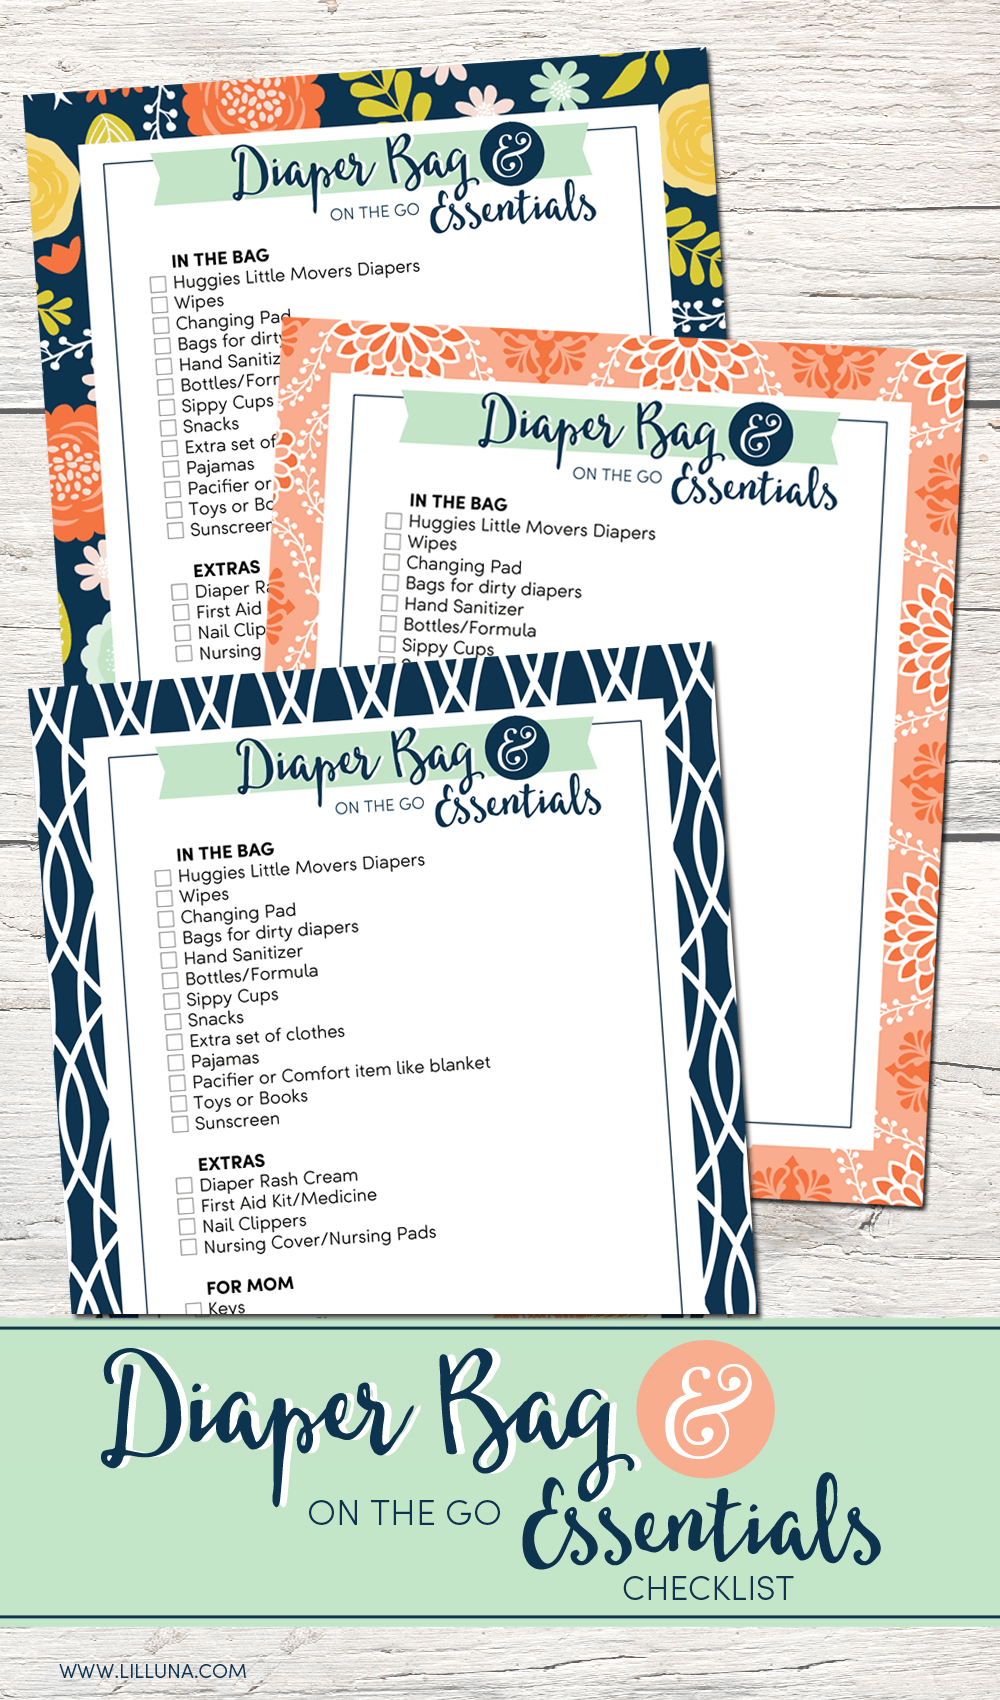 Diaper Bag and on the go Essentials list - tips for being on the move with your little movers.